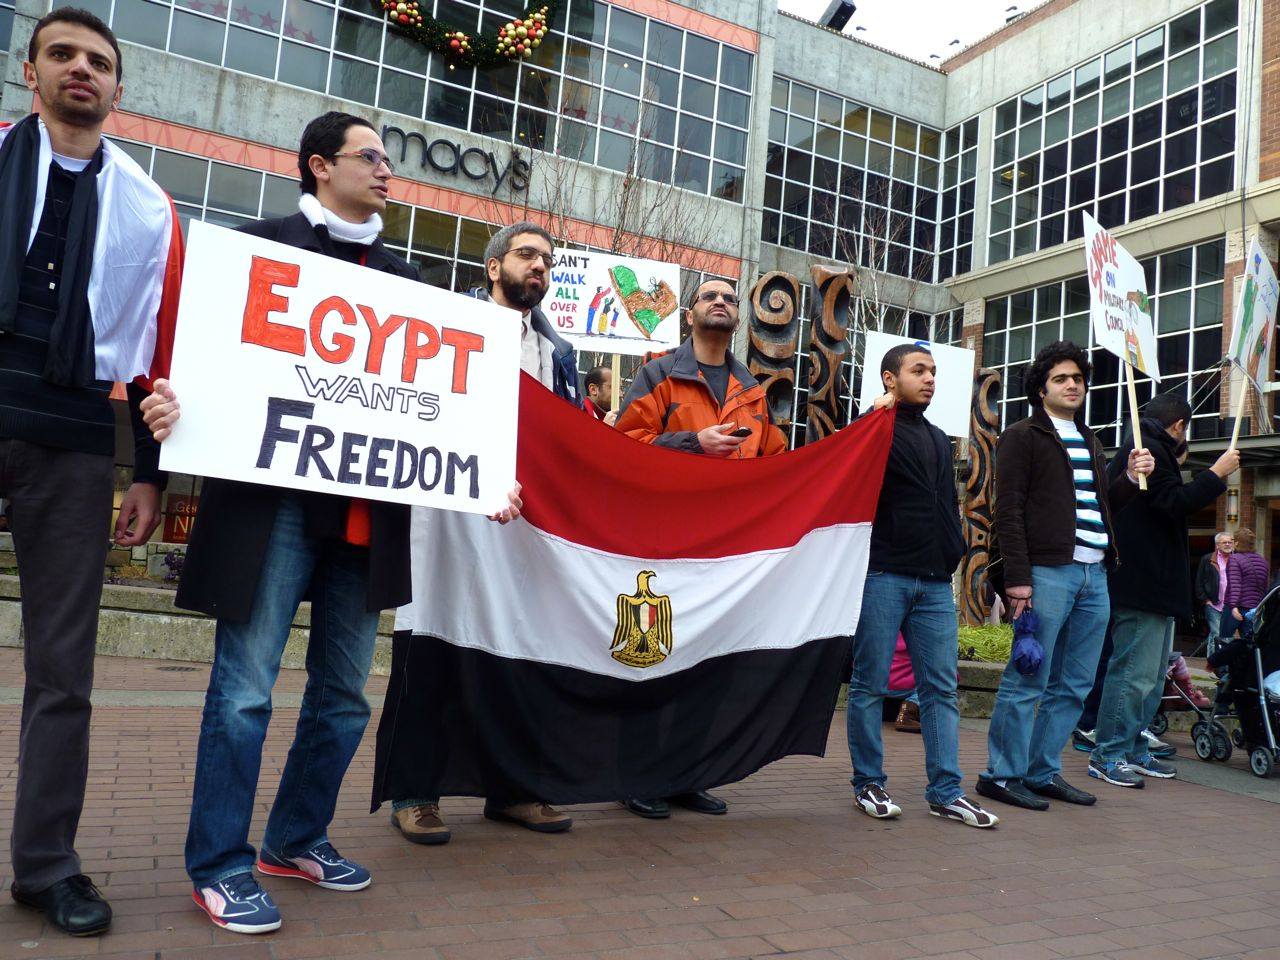 Egyptian-Americans protested at Bellevue Square Mall last month.